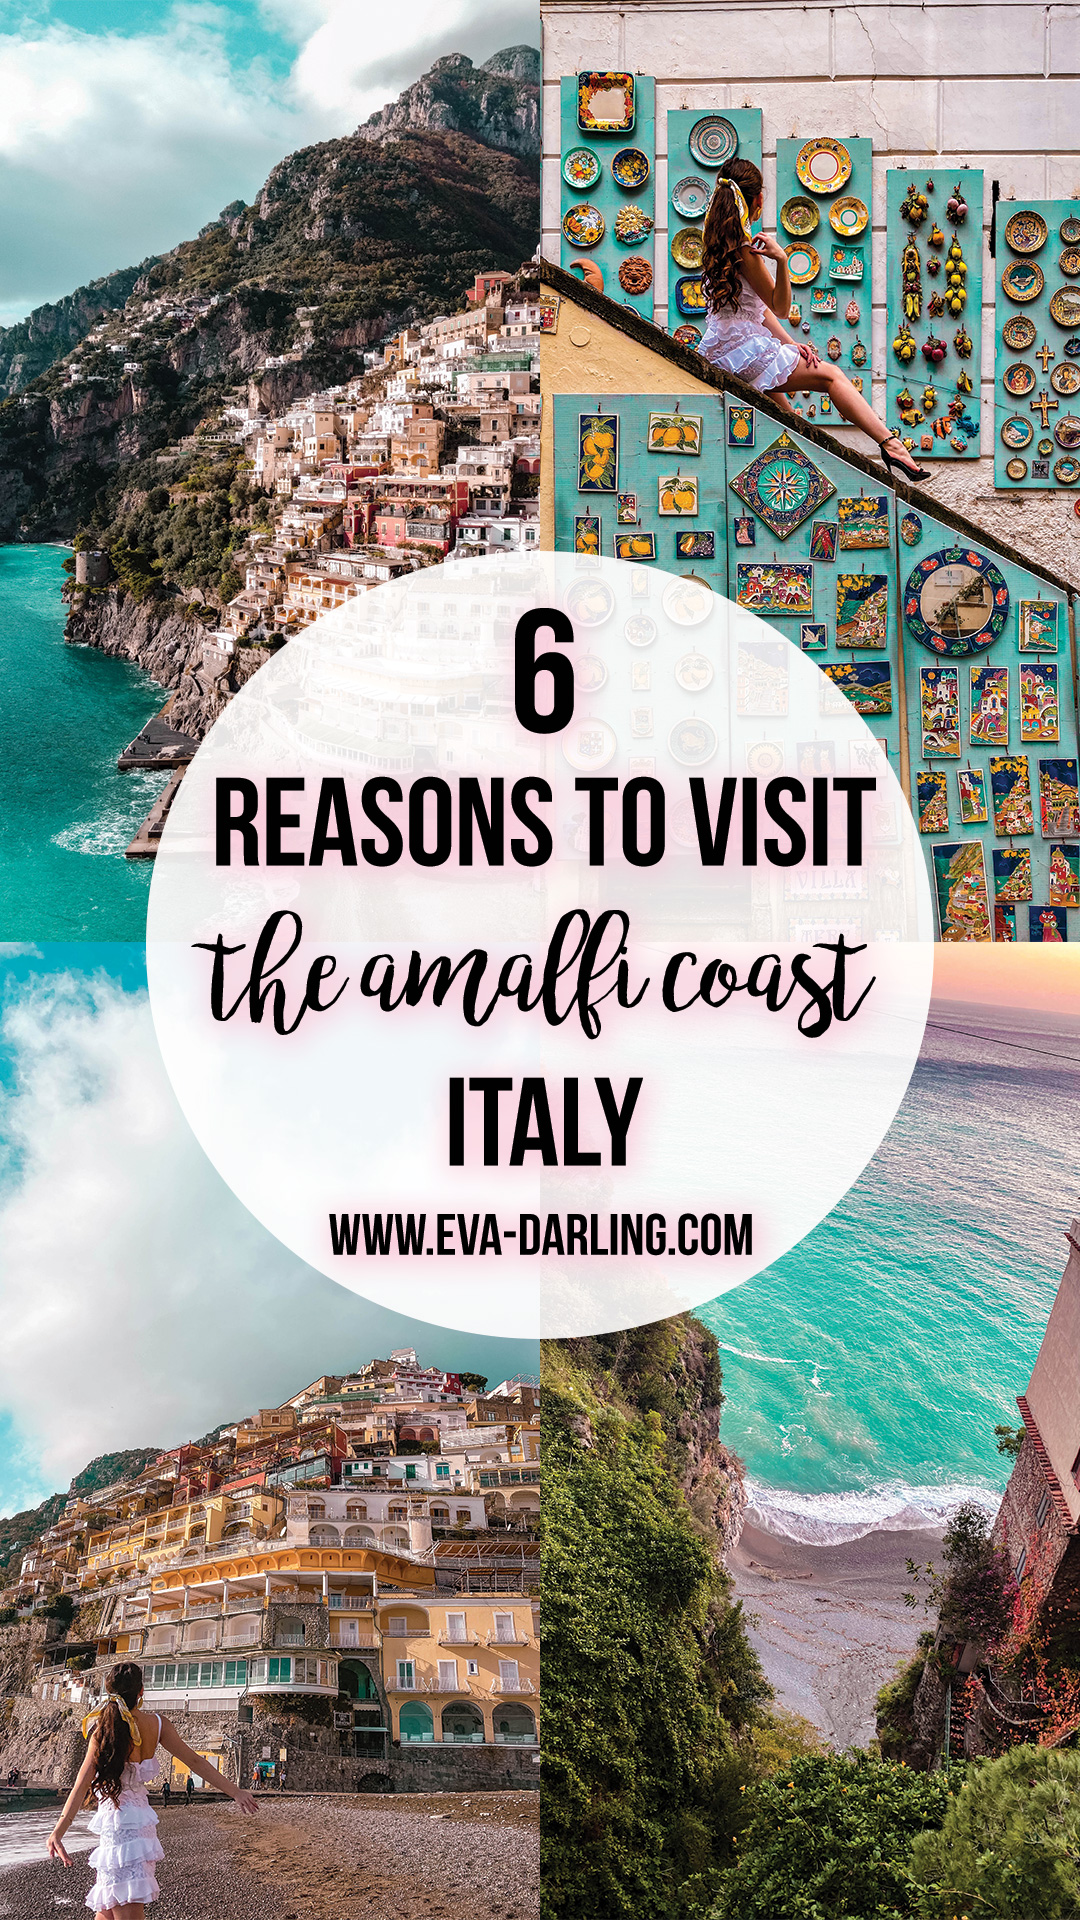 best things to do on the amalfi coast where to go in italy road trip destination europe things to do in positano amalfi coast winter off season travel blogger eva darling eva phan plate wall beach travel tips southern italy province of salerno solo female travel traveler